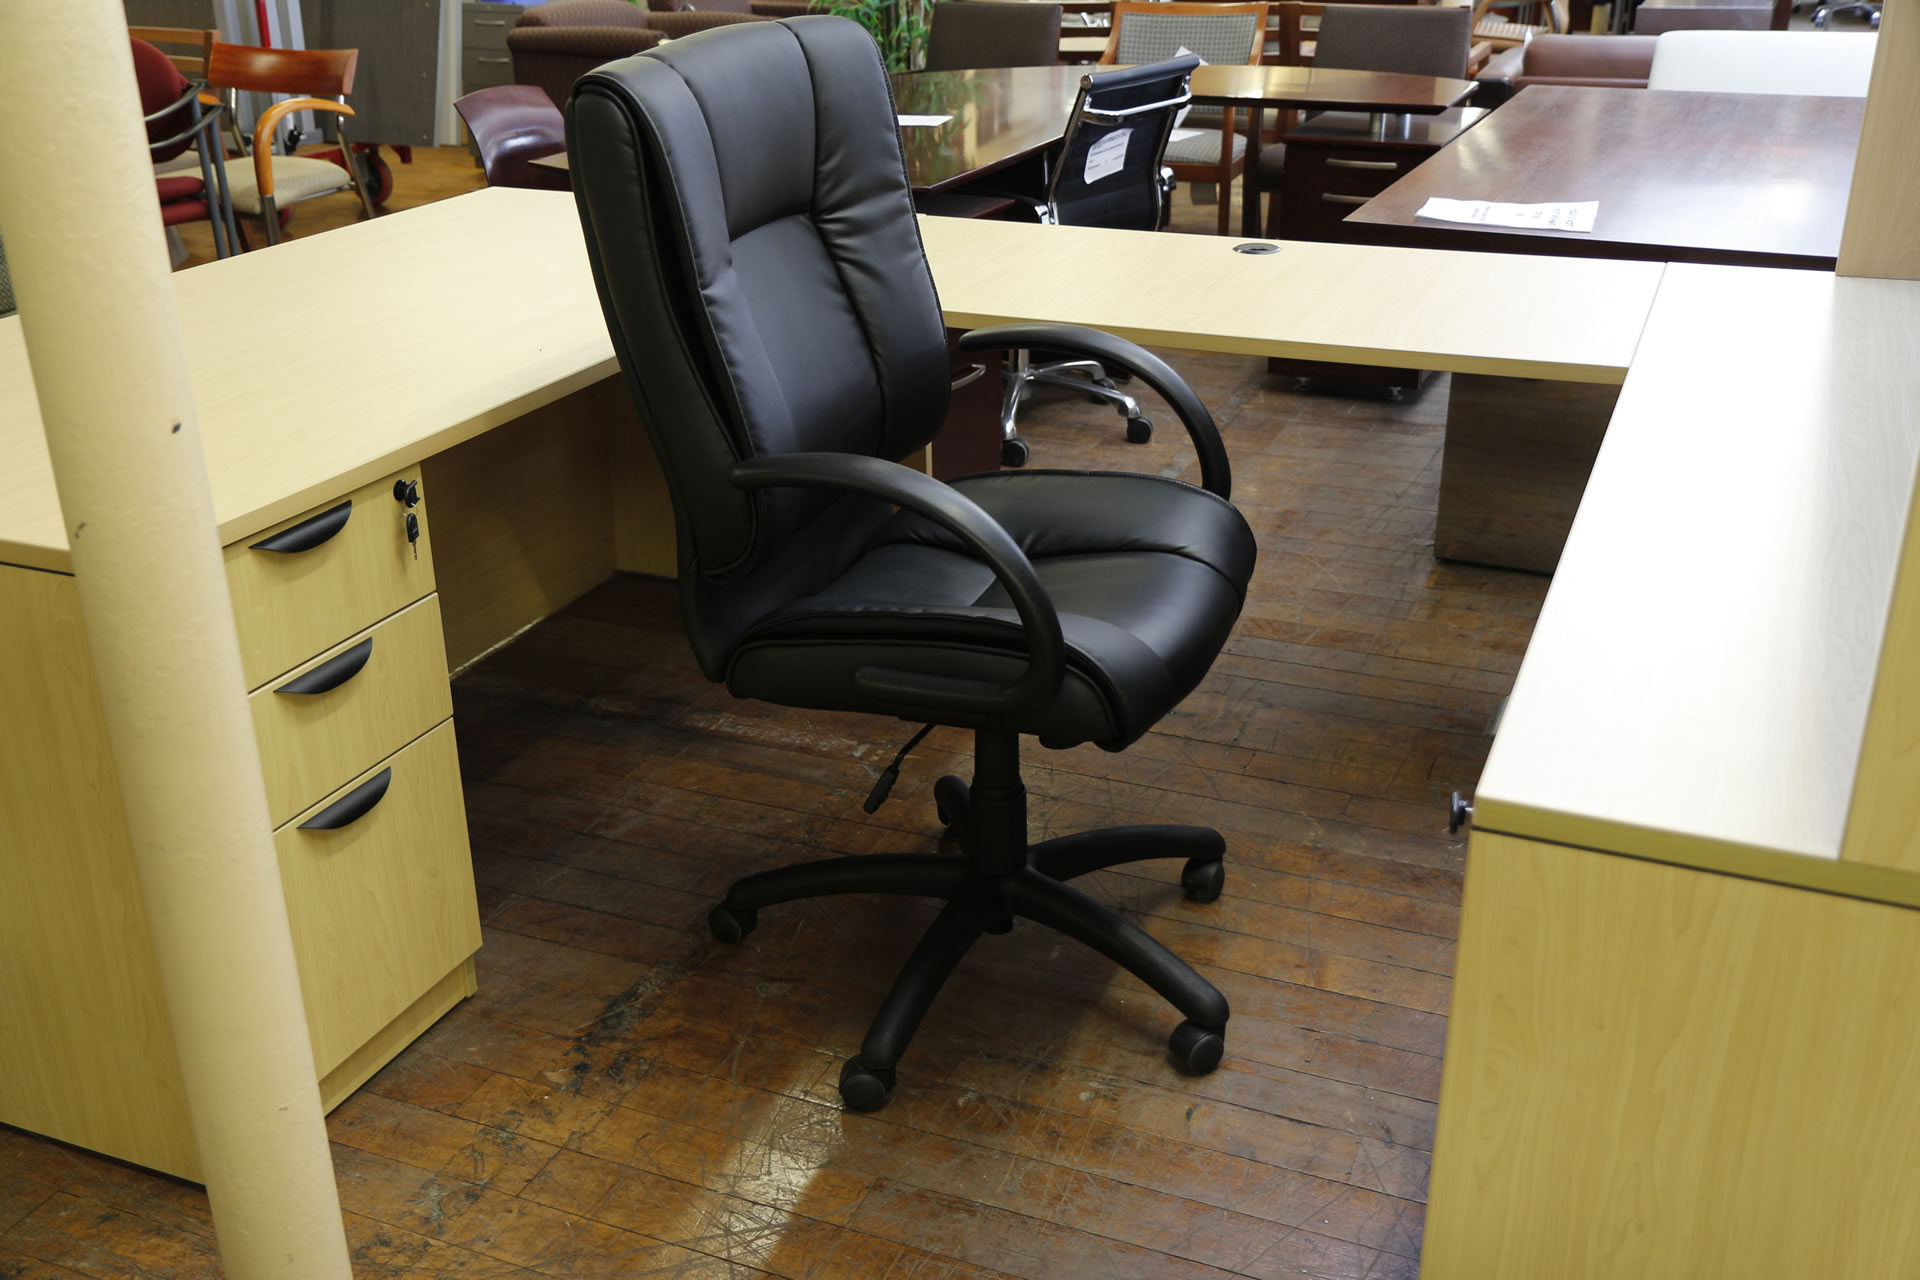 peartreeofficefurniture_peartreeofficefurniture_peartreeofficefurniture_2015-06-18_20-54-46.jpg